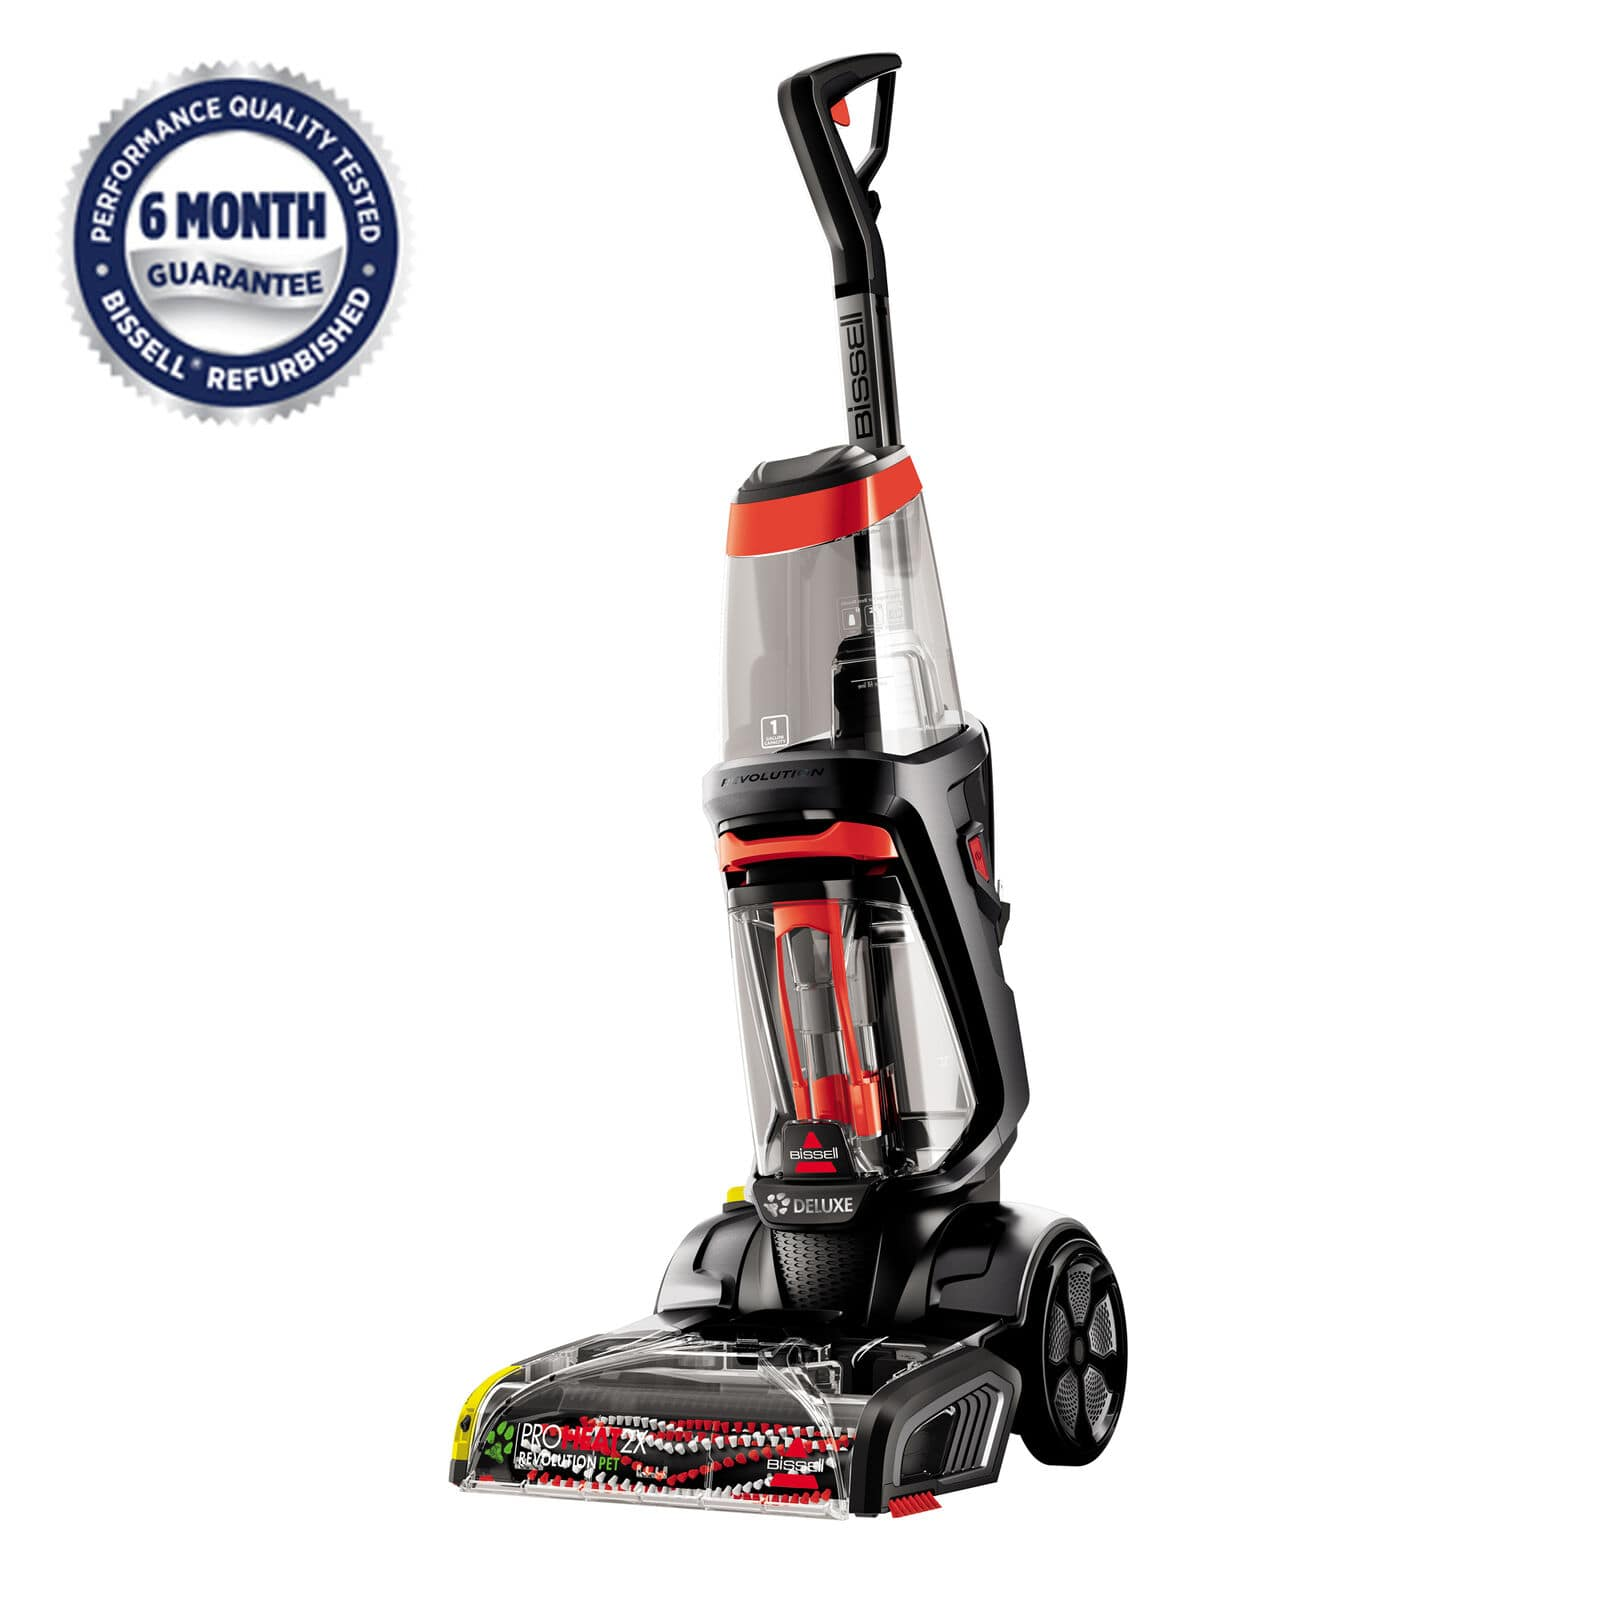 Bissell ProHeat 2X Revolution Pet Pro Carpet Cleaner (Refurbished) $104 + free shipping